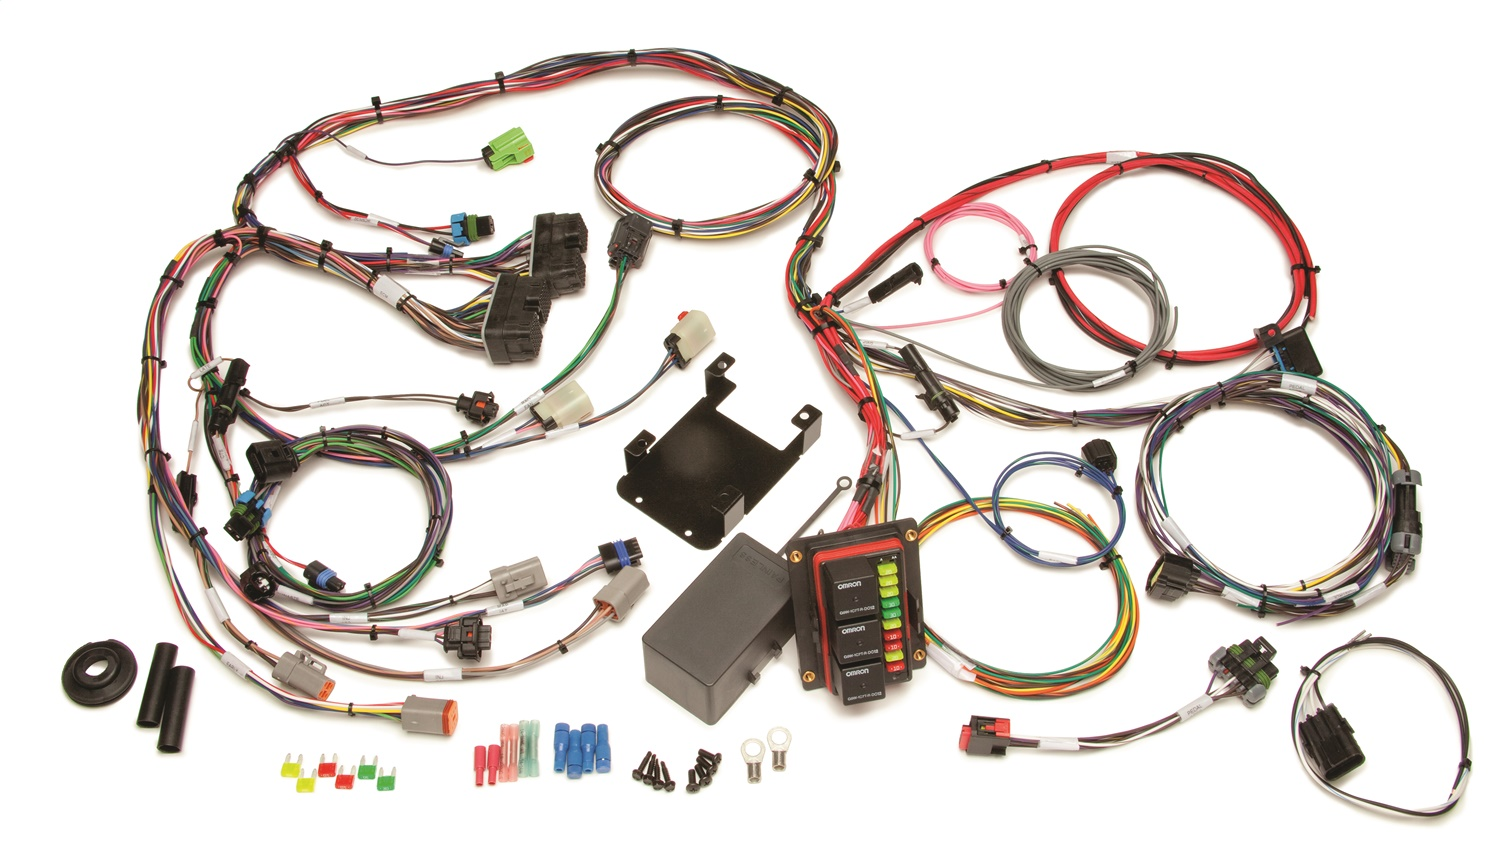 ford 4 9l engine harness diagram engine harness painless wiring 60250 cummins diesel engine harness fits ...